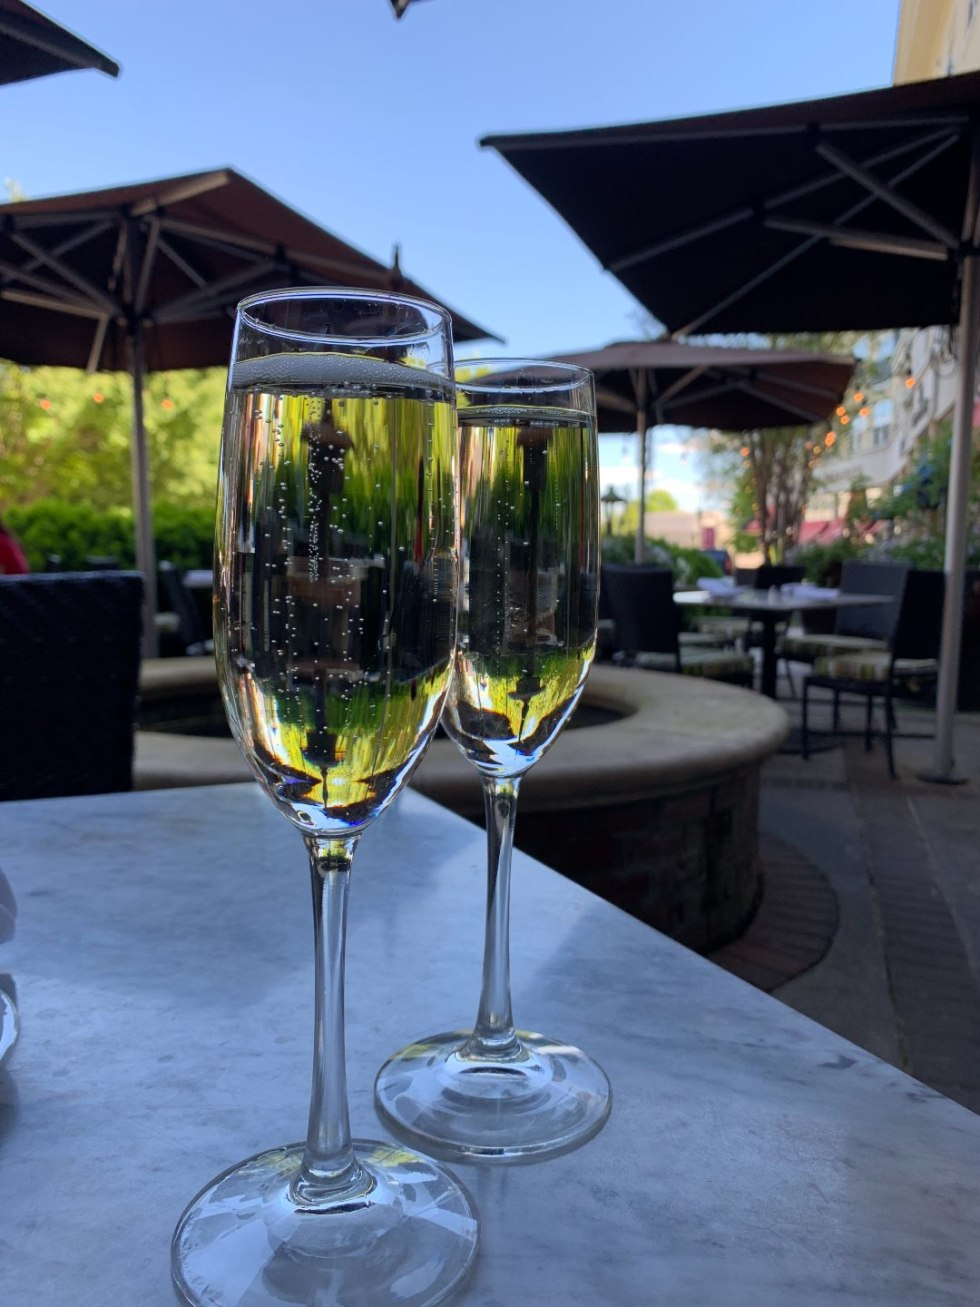 16 Can't-Miss Patios in Raleigh - I'm Fixin' To - @mbg0112   Best spots for patio dining in downtown Raleigh featured by top North Carolina blog, I'm Fixin' To: Vivace